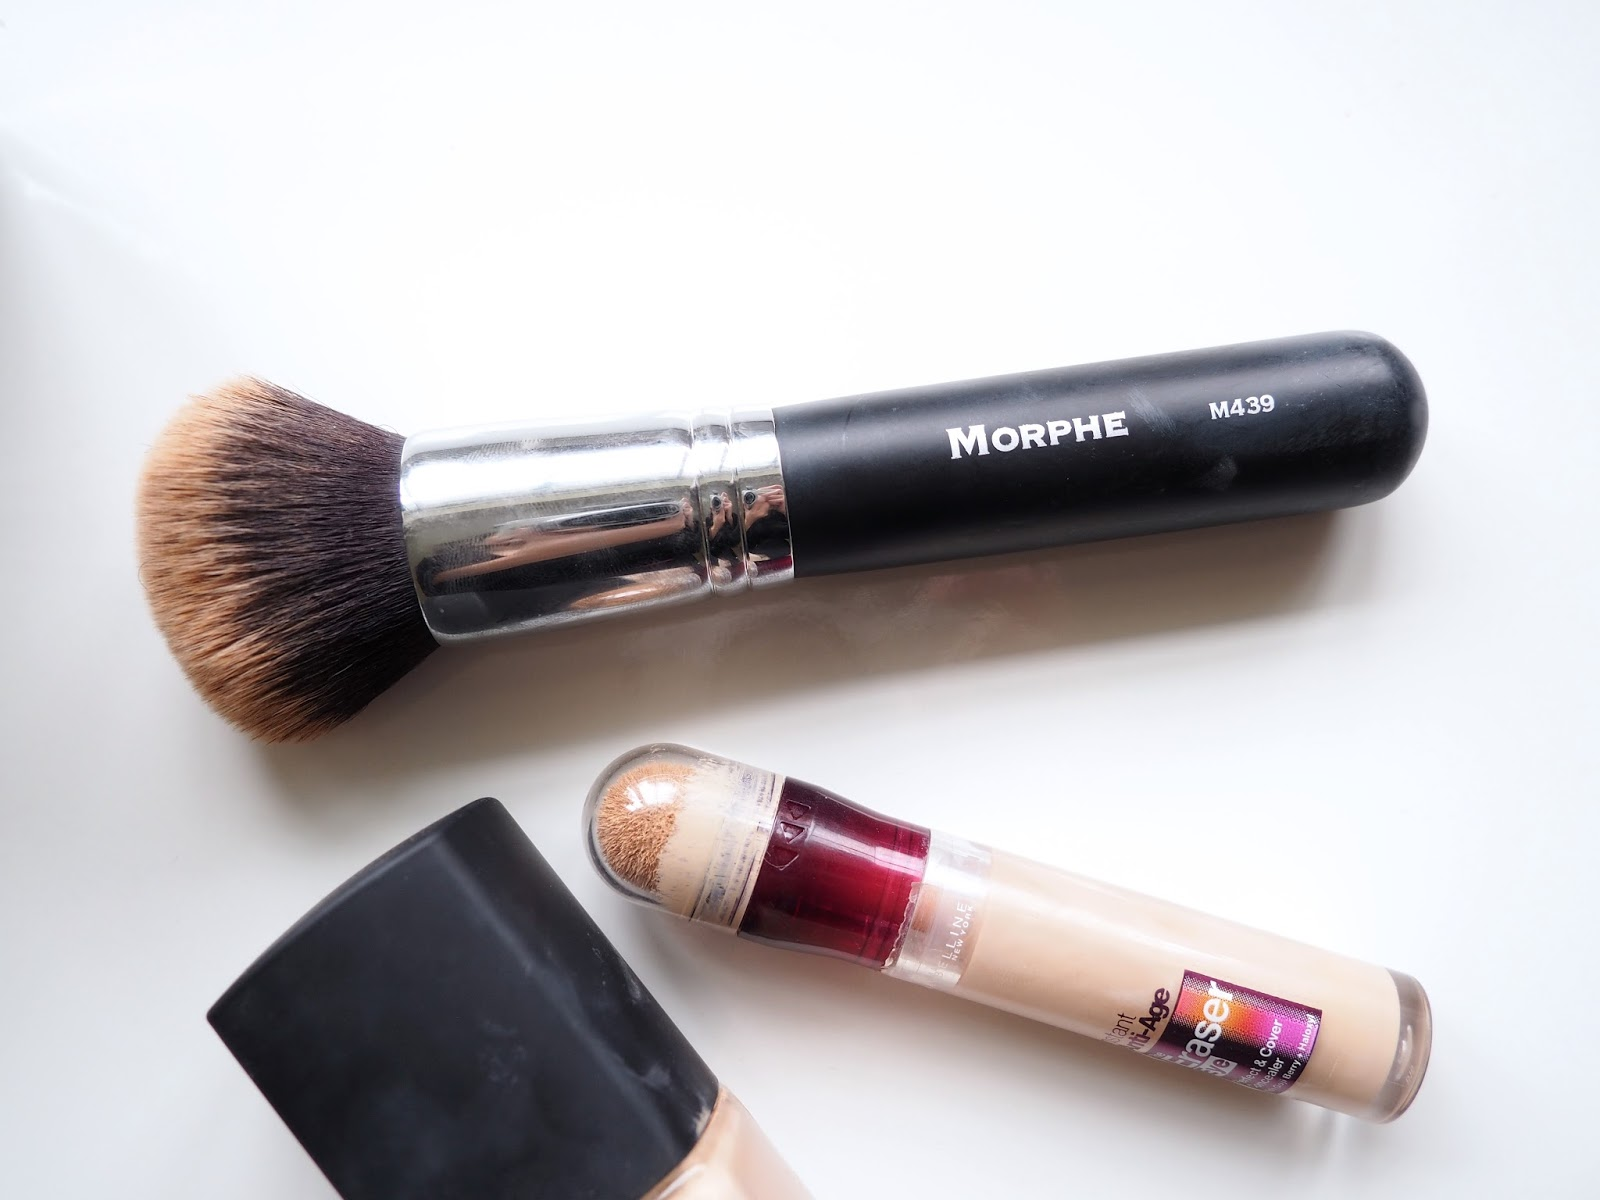 It's Cultured - Seven Beauty Products I Can't Live Without including Morphe M439 and Maybelline Eraser Eye